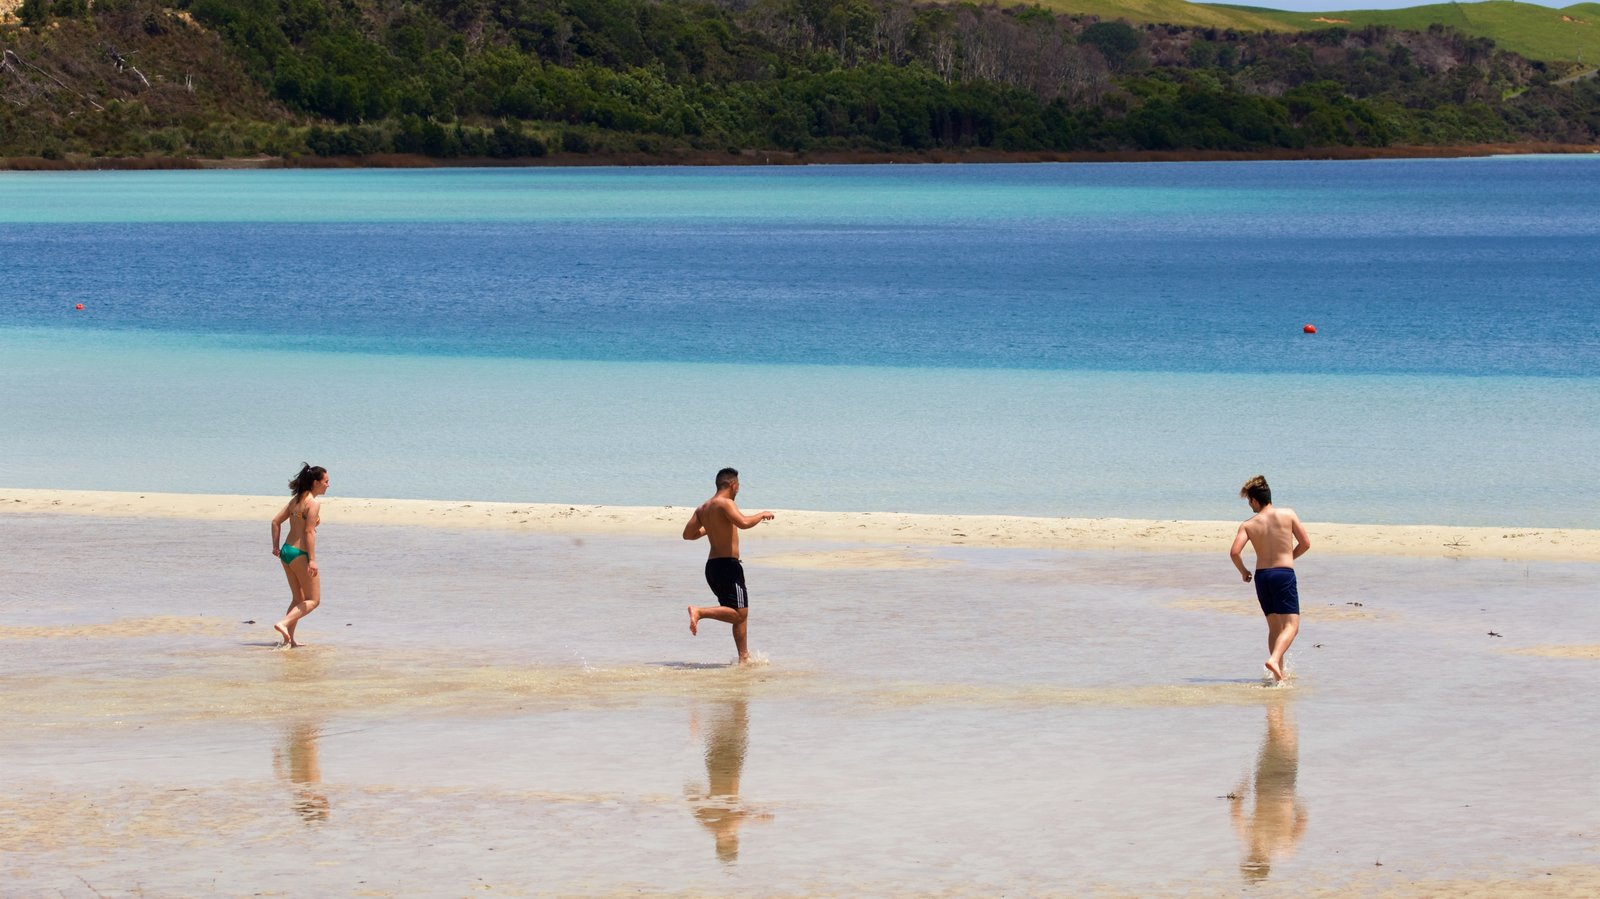 Kai Iwi Lakes showing a sandy beach and a bay or harbor as well as a small group of people